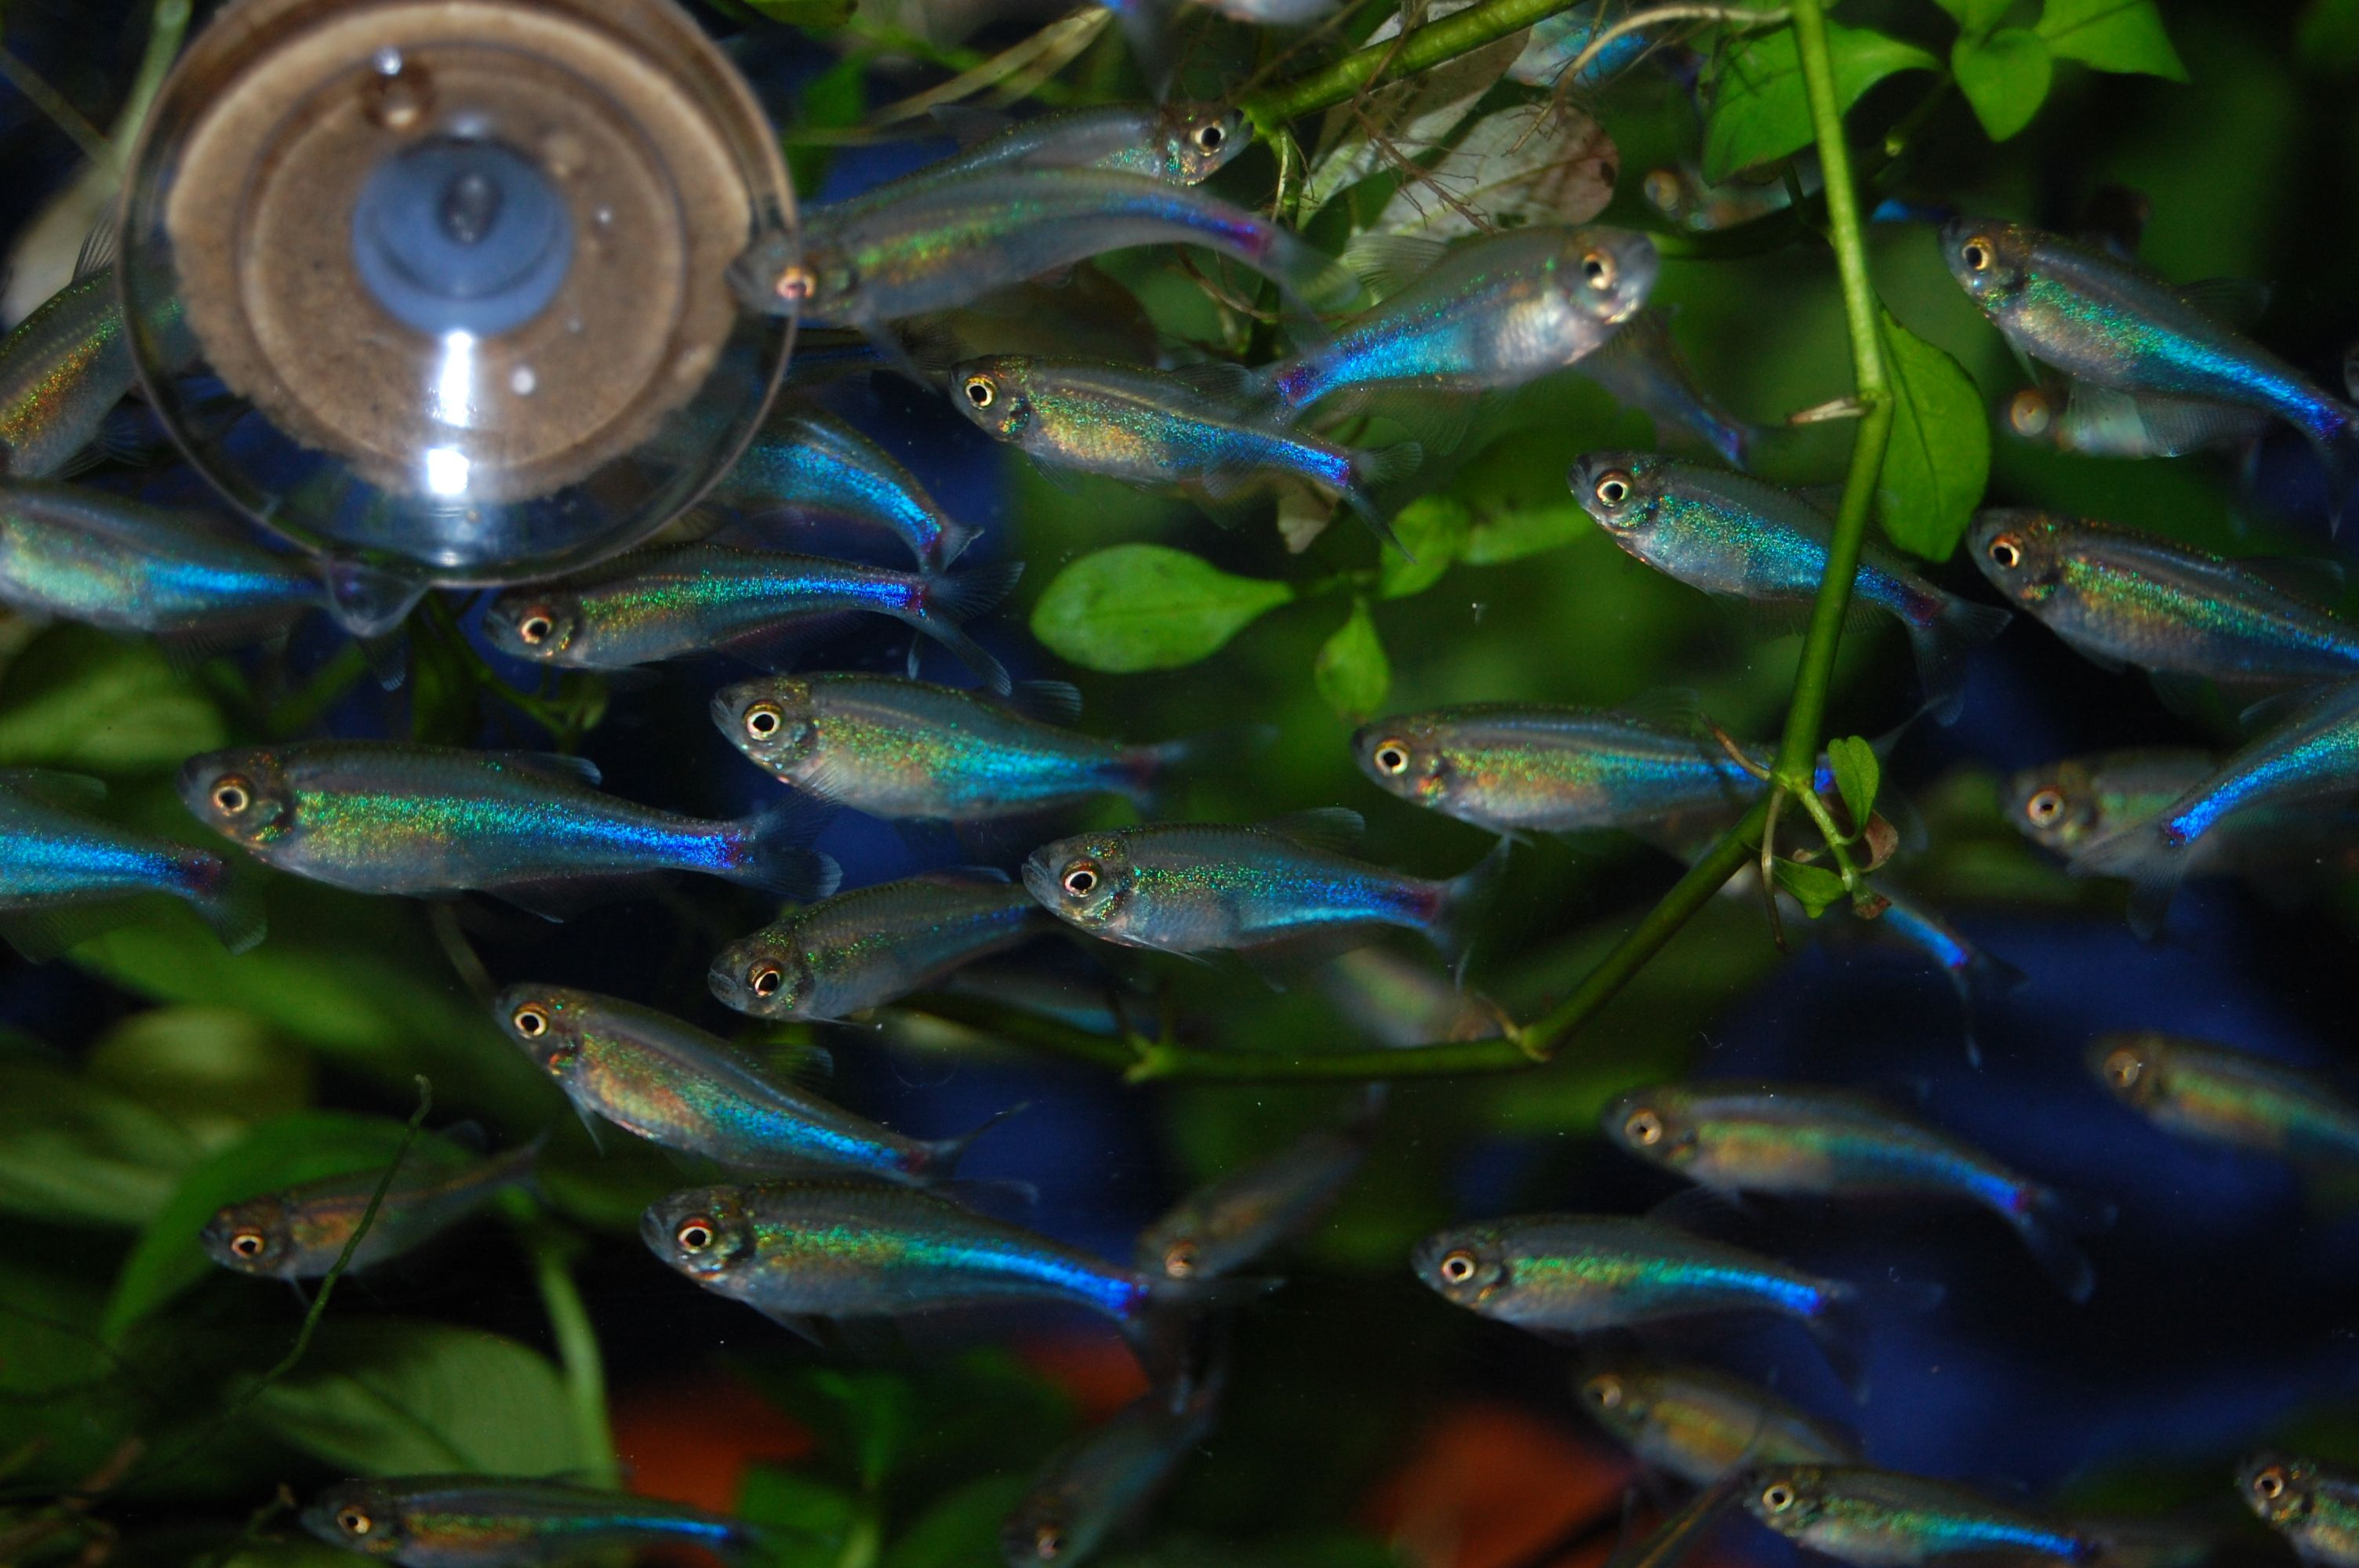 Neon tetra for sale aquariumfish net - Cochu S Blue Tetra Planted Aquariumaquarium Fishfish